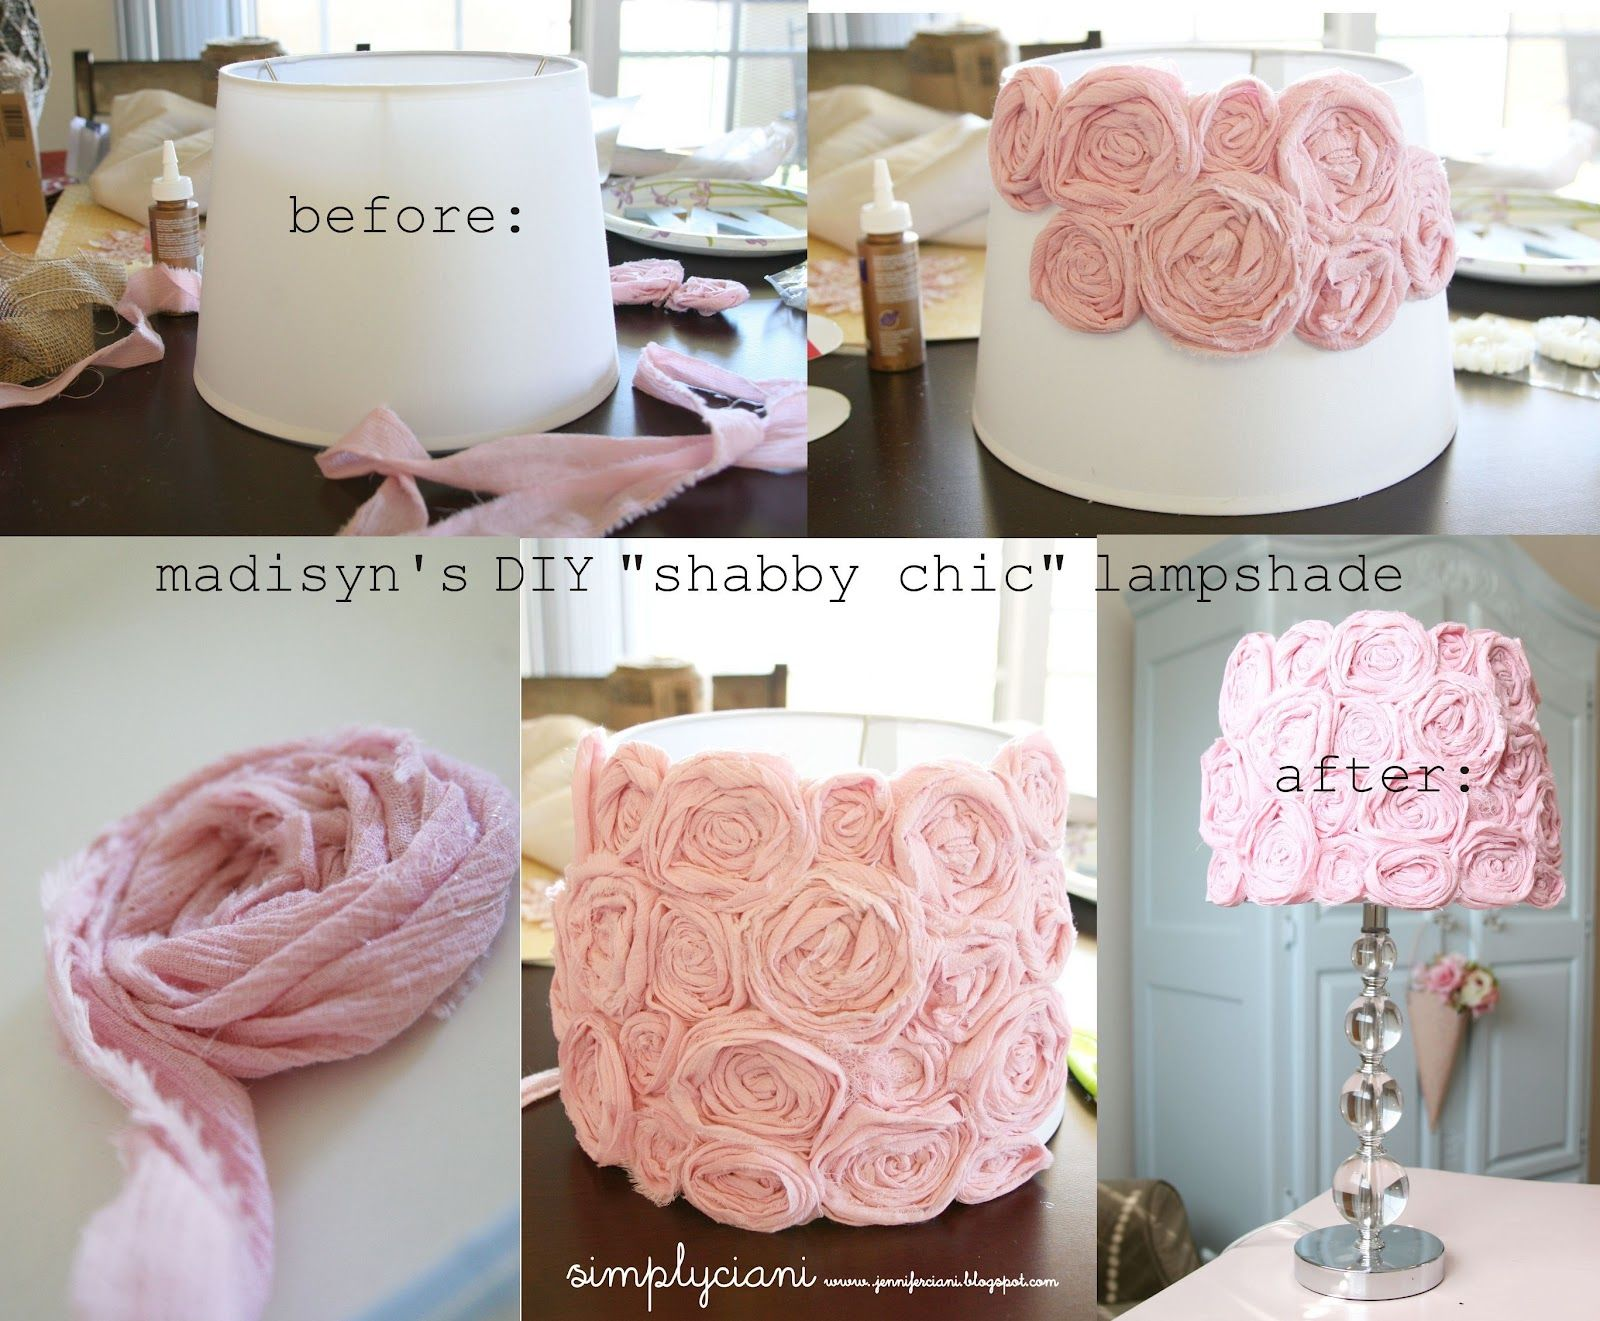 Diy Shabby Chic Decor simply ciani: target tuesday - diy shabby chic lampshade for